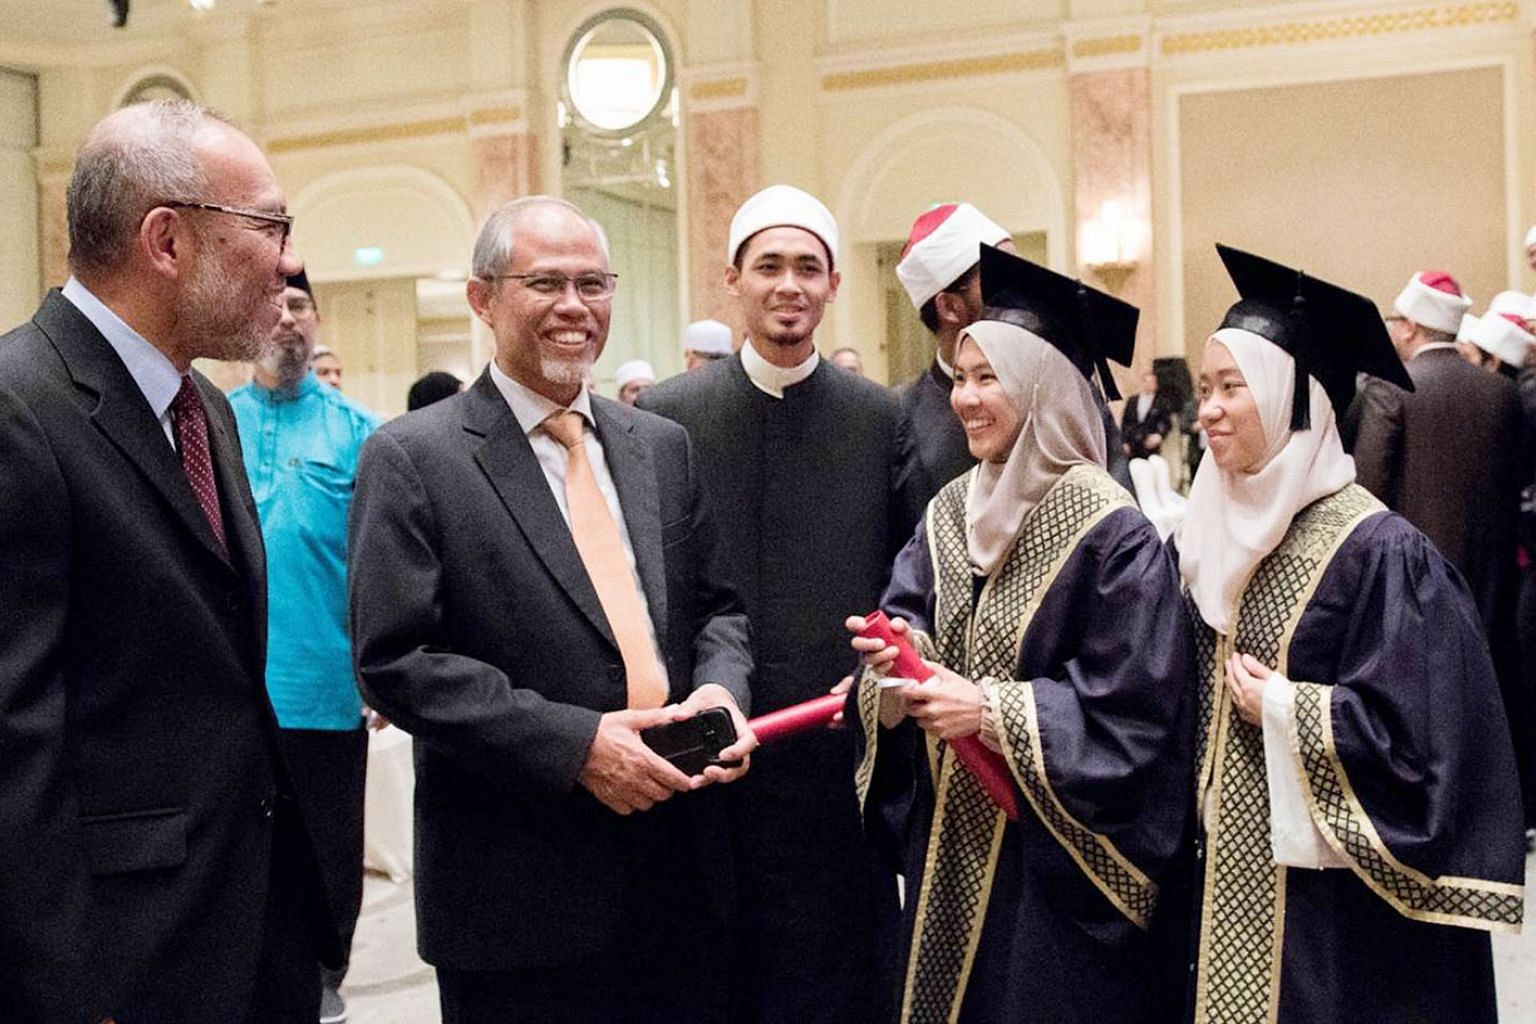 Minister-in-charge of Muslim Affairs Masagos Zulkifli mingling with some graduates from the class of 2018 at Cairo's Al-Azhar University on Monday.